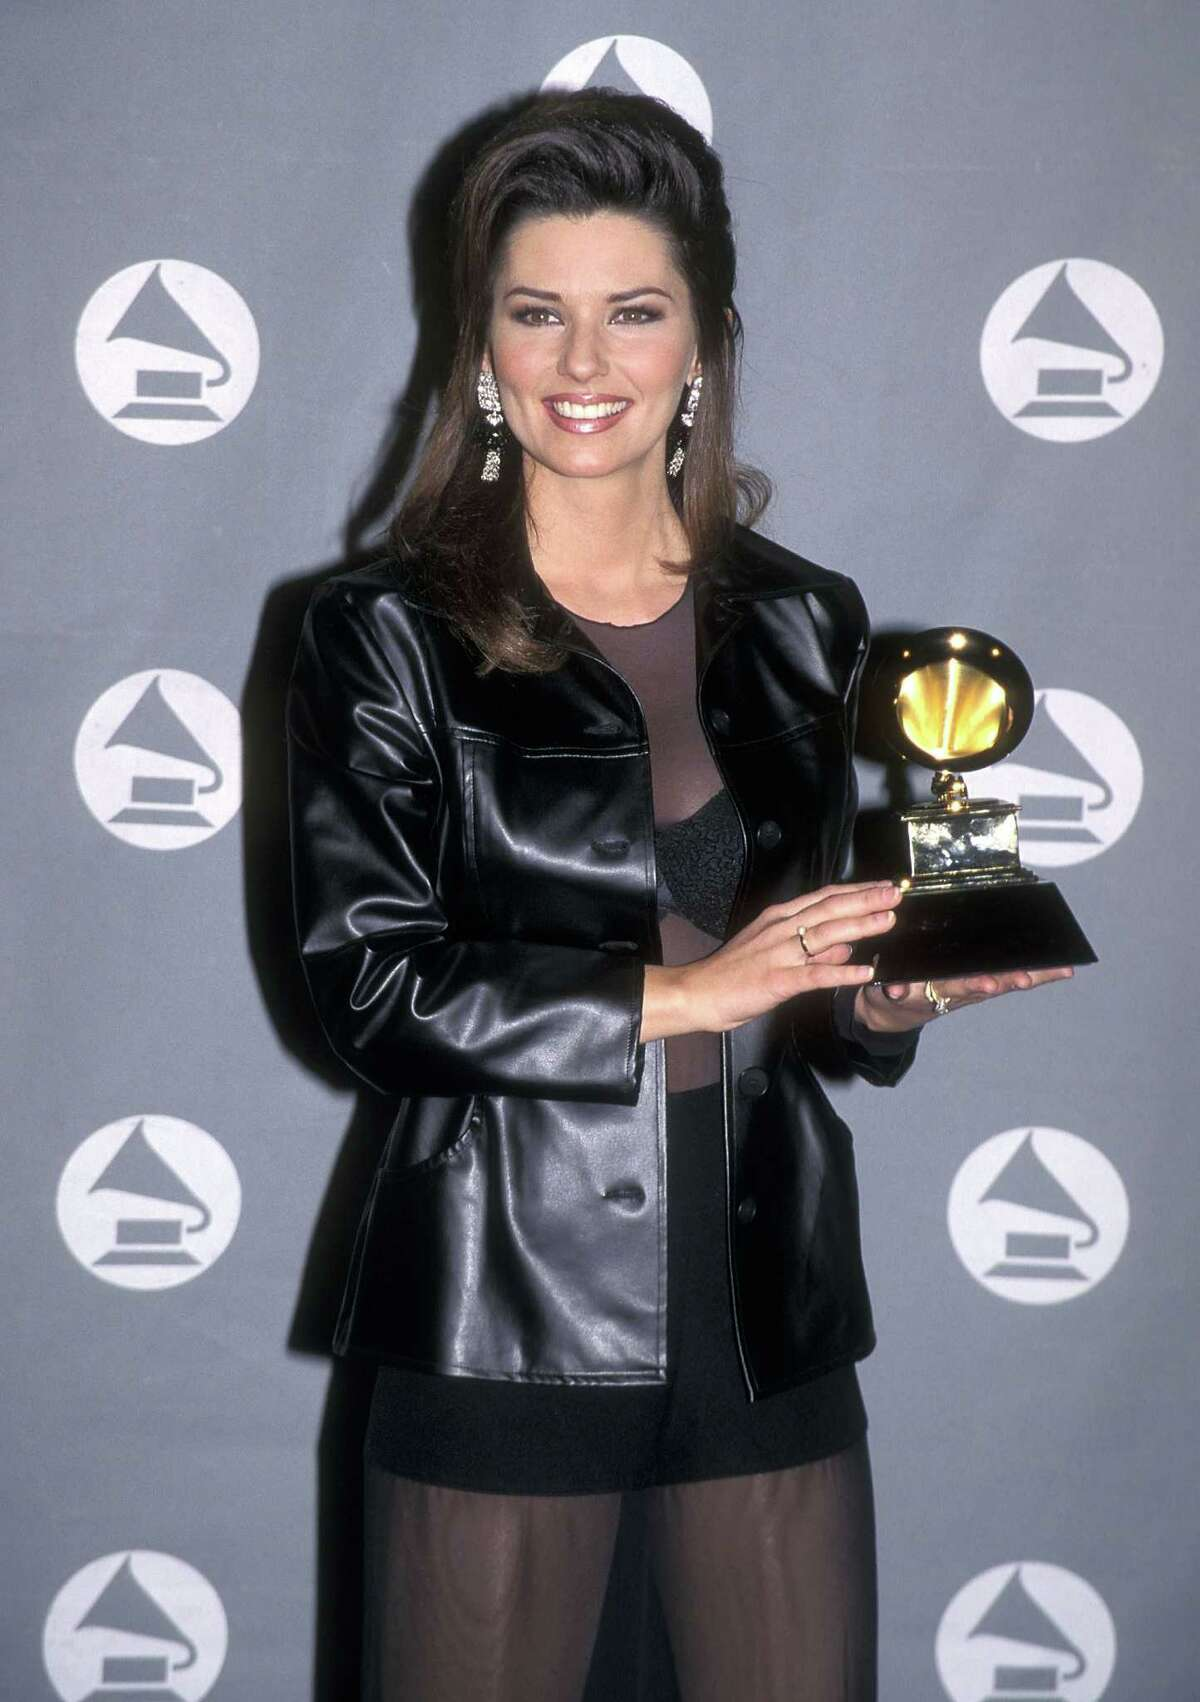 Shania Twain shows off her Grammy Award on Feb. 28, 1996 in Los Angeles.